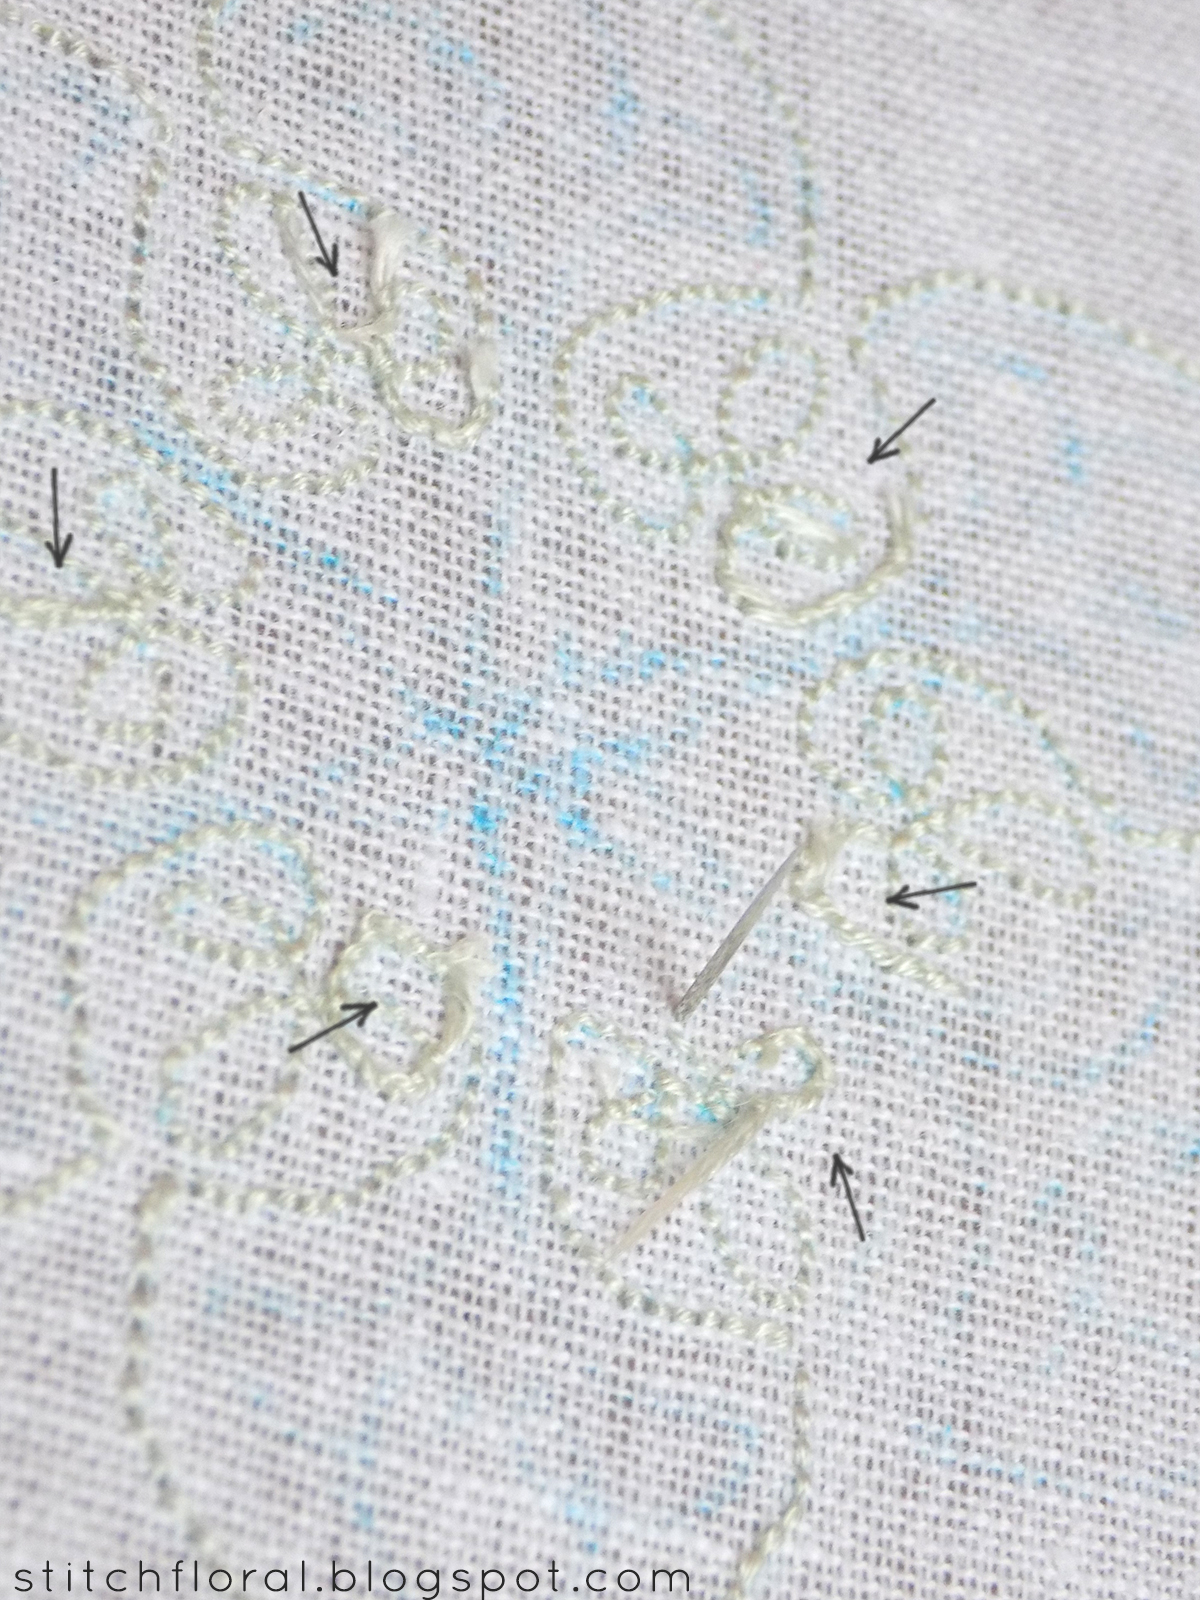 How To Start Thread When A Knot And Anchoring Stitches Are Not An